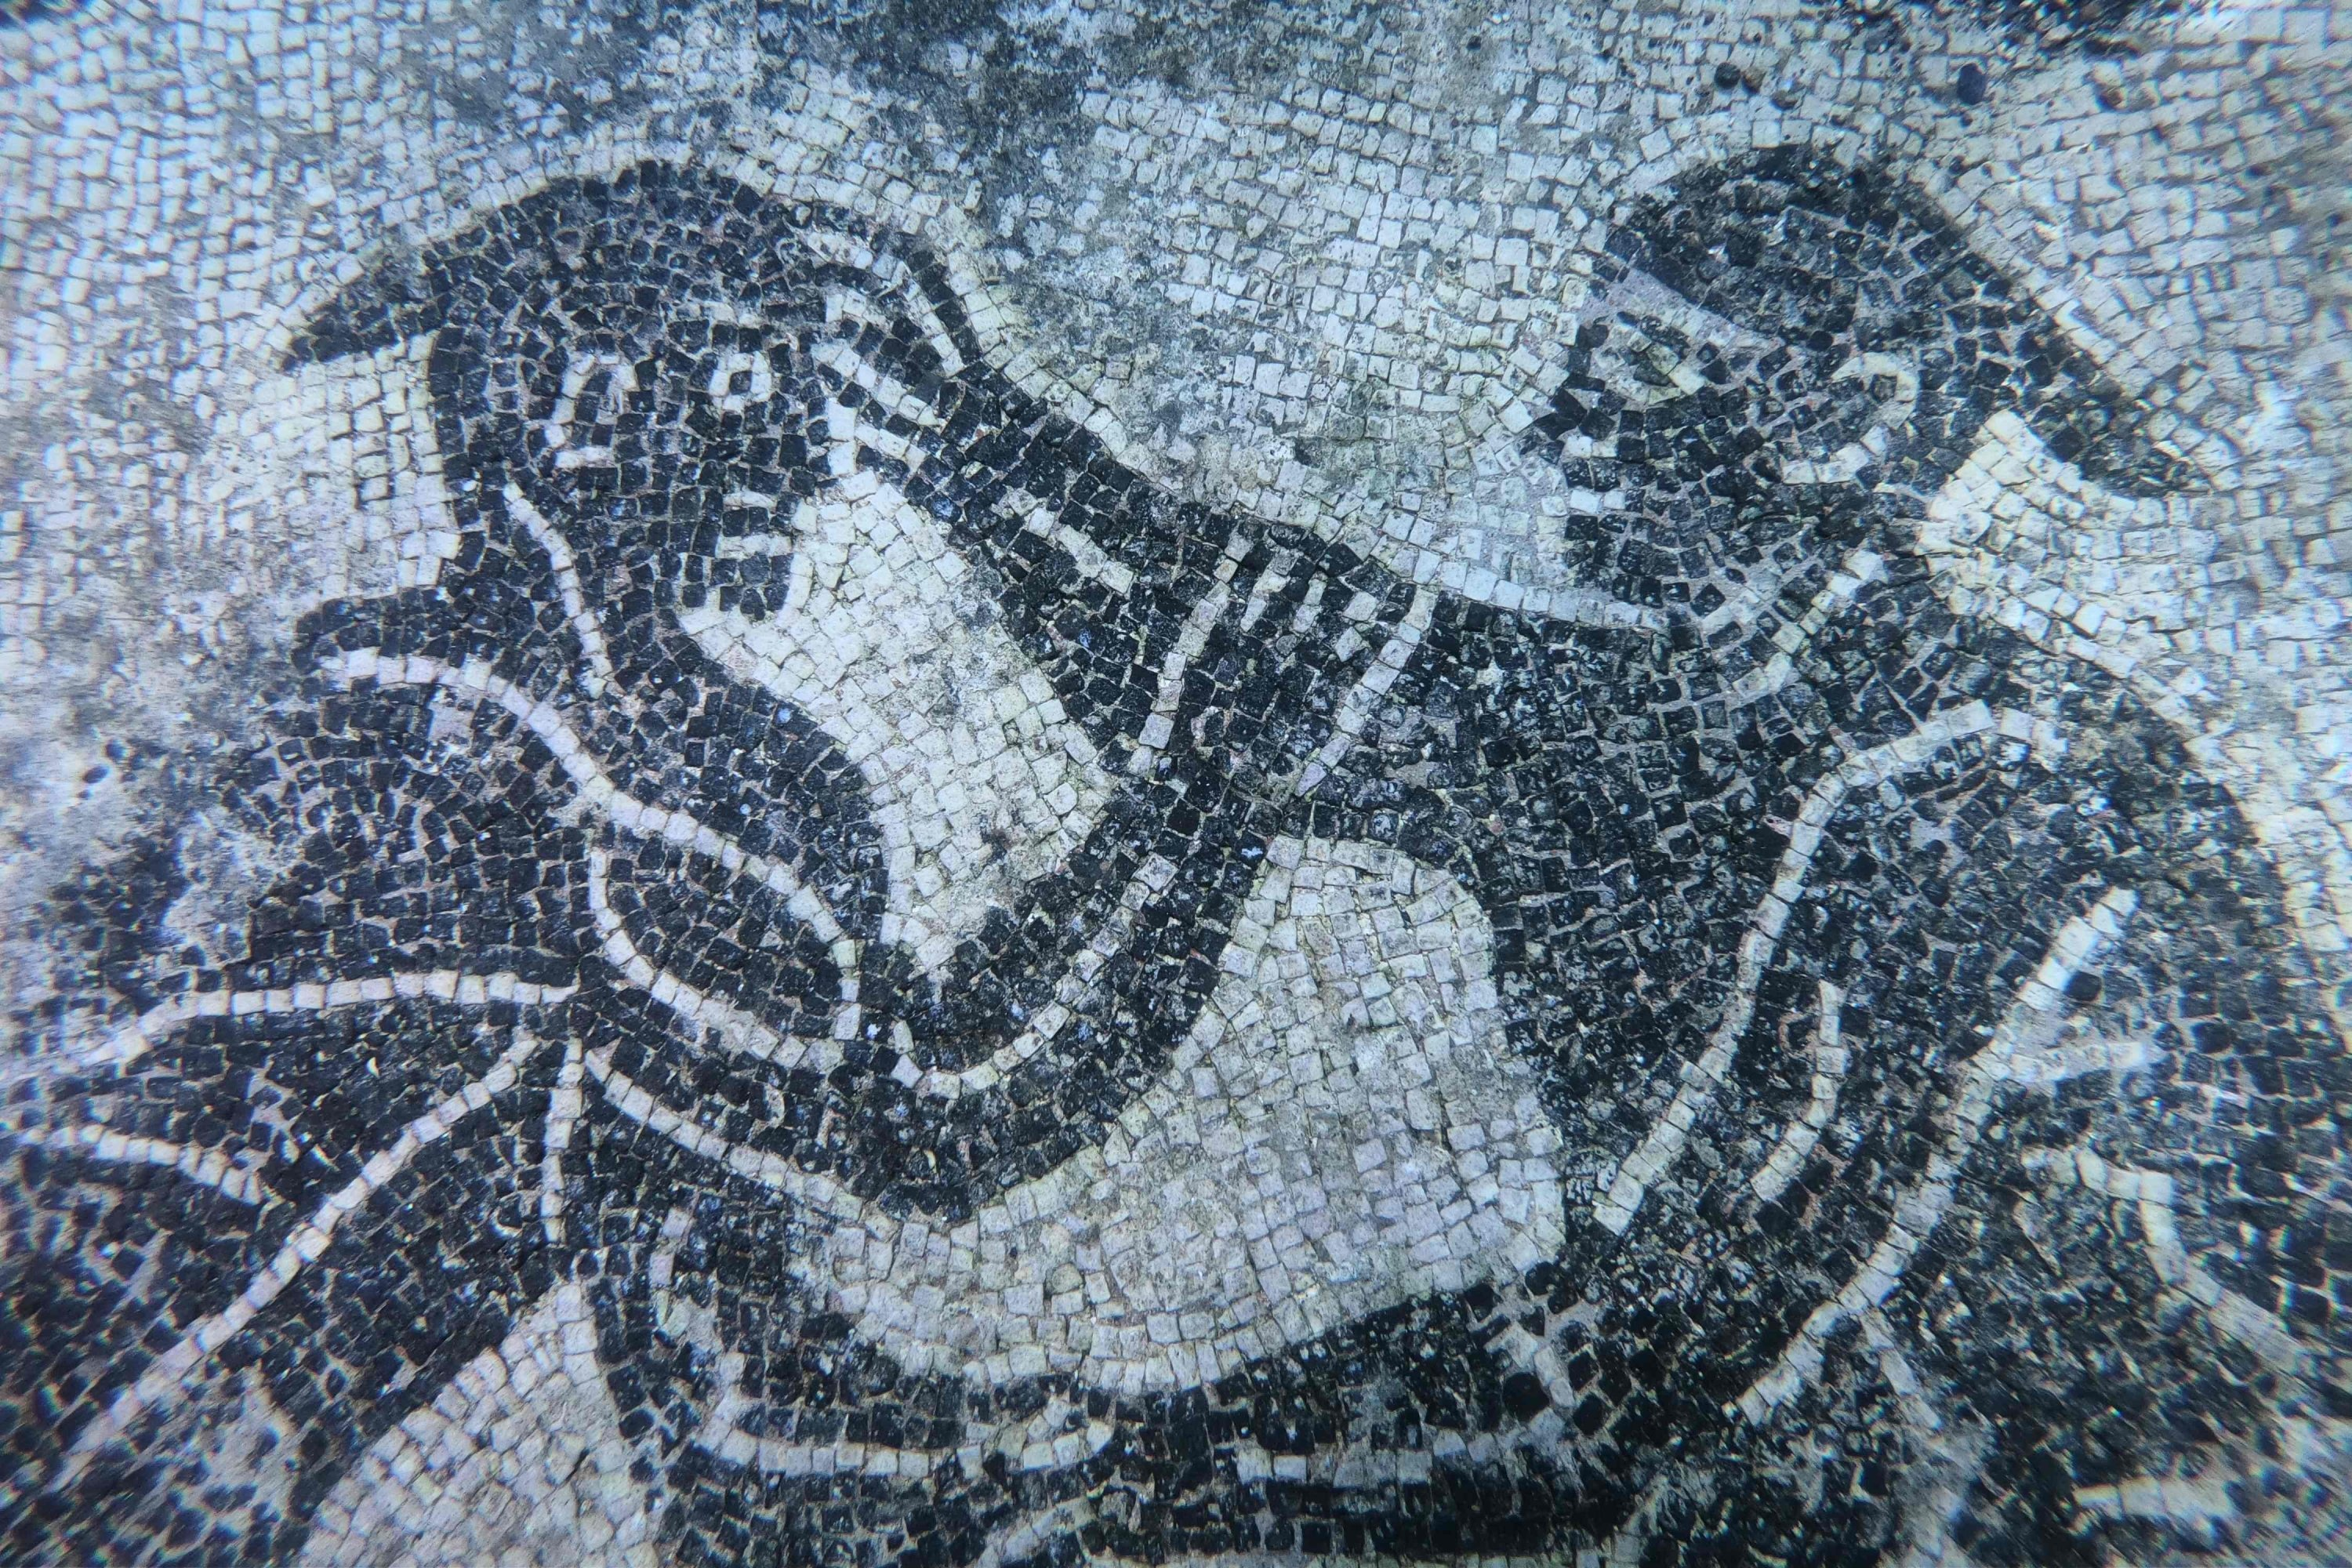 The detail of the mosaic from Villa a Protiro can beseen in the submerged ancient Roman city of Baiae, Pozzuoli near Naples, Italy, Aug. 18, 2021. (AFP Photo)